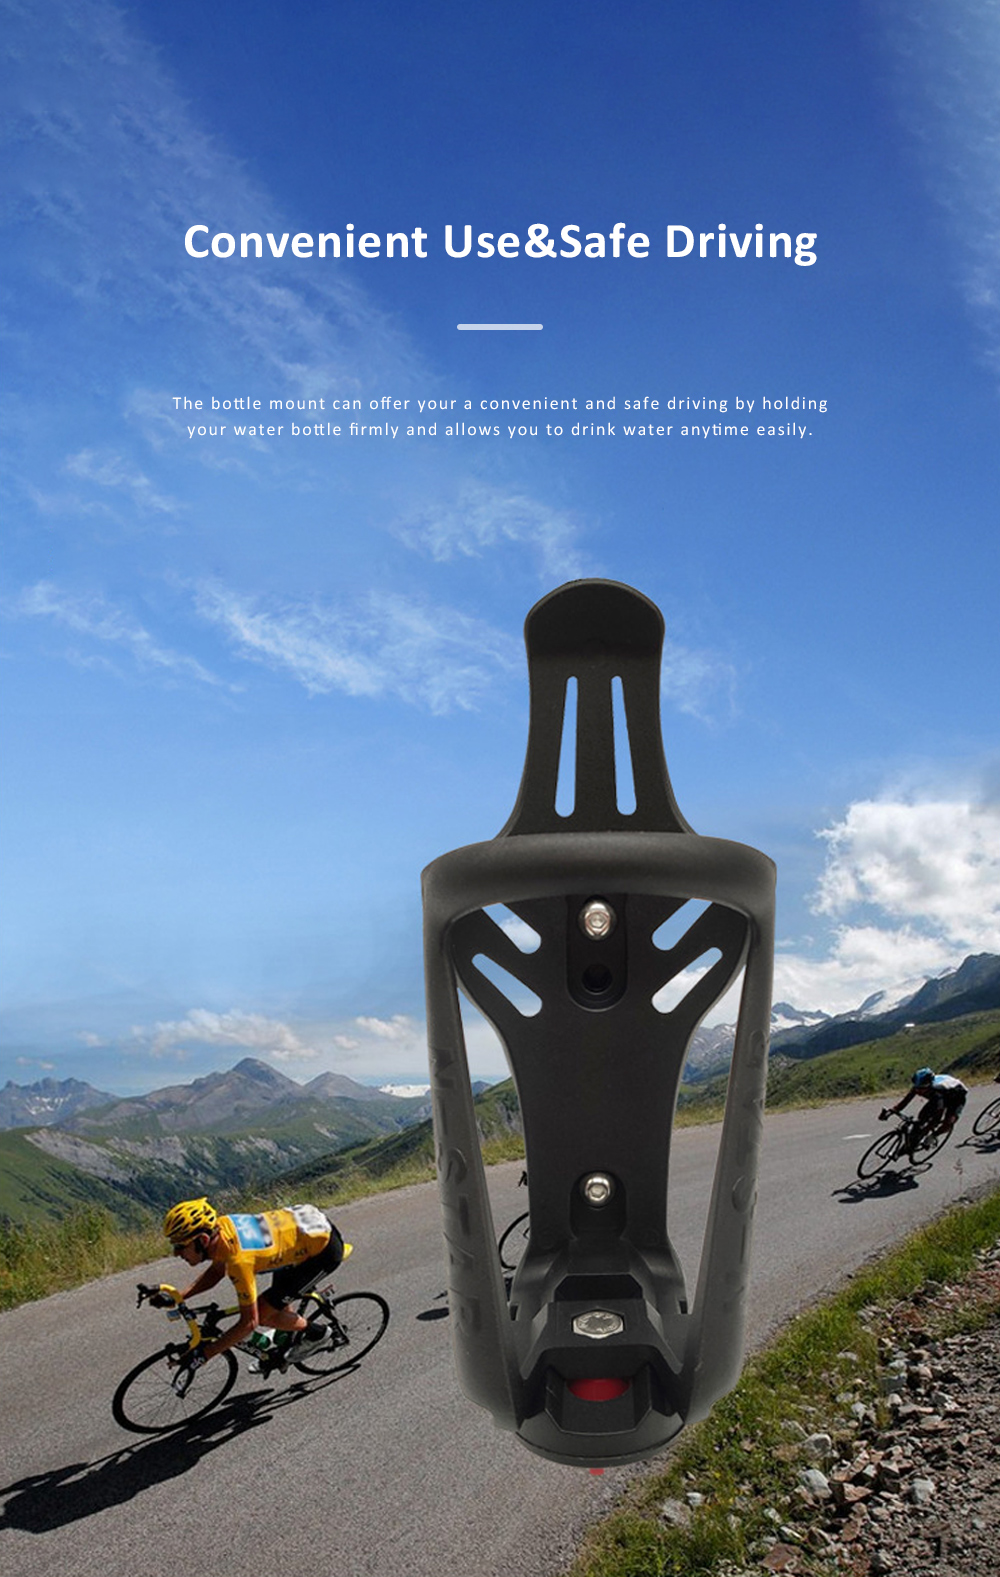 N-STAR Bicycle Water Bottle Mount Motorcycle Water Bottle Holder Brackets with Adjustable Size for Safe Outdoor Activities 5